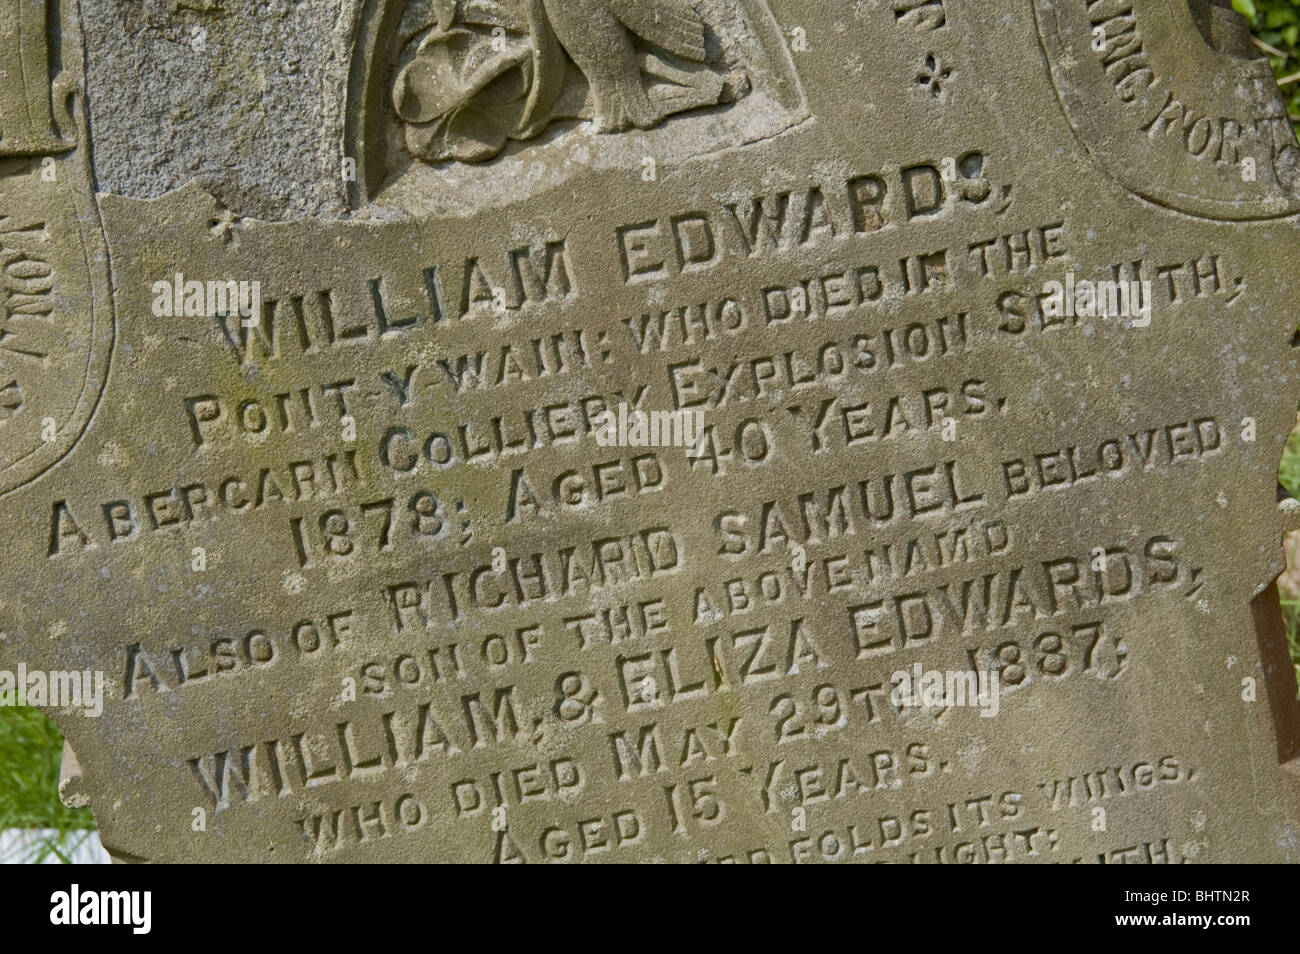 Gravestone of miner aged 40 killed in the Abercarn Colliery explosion 11th Sept 1878 Pontywaun South Wales Valleys - Stock Image